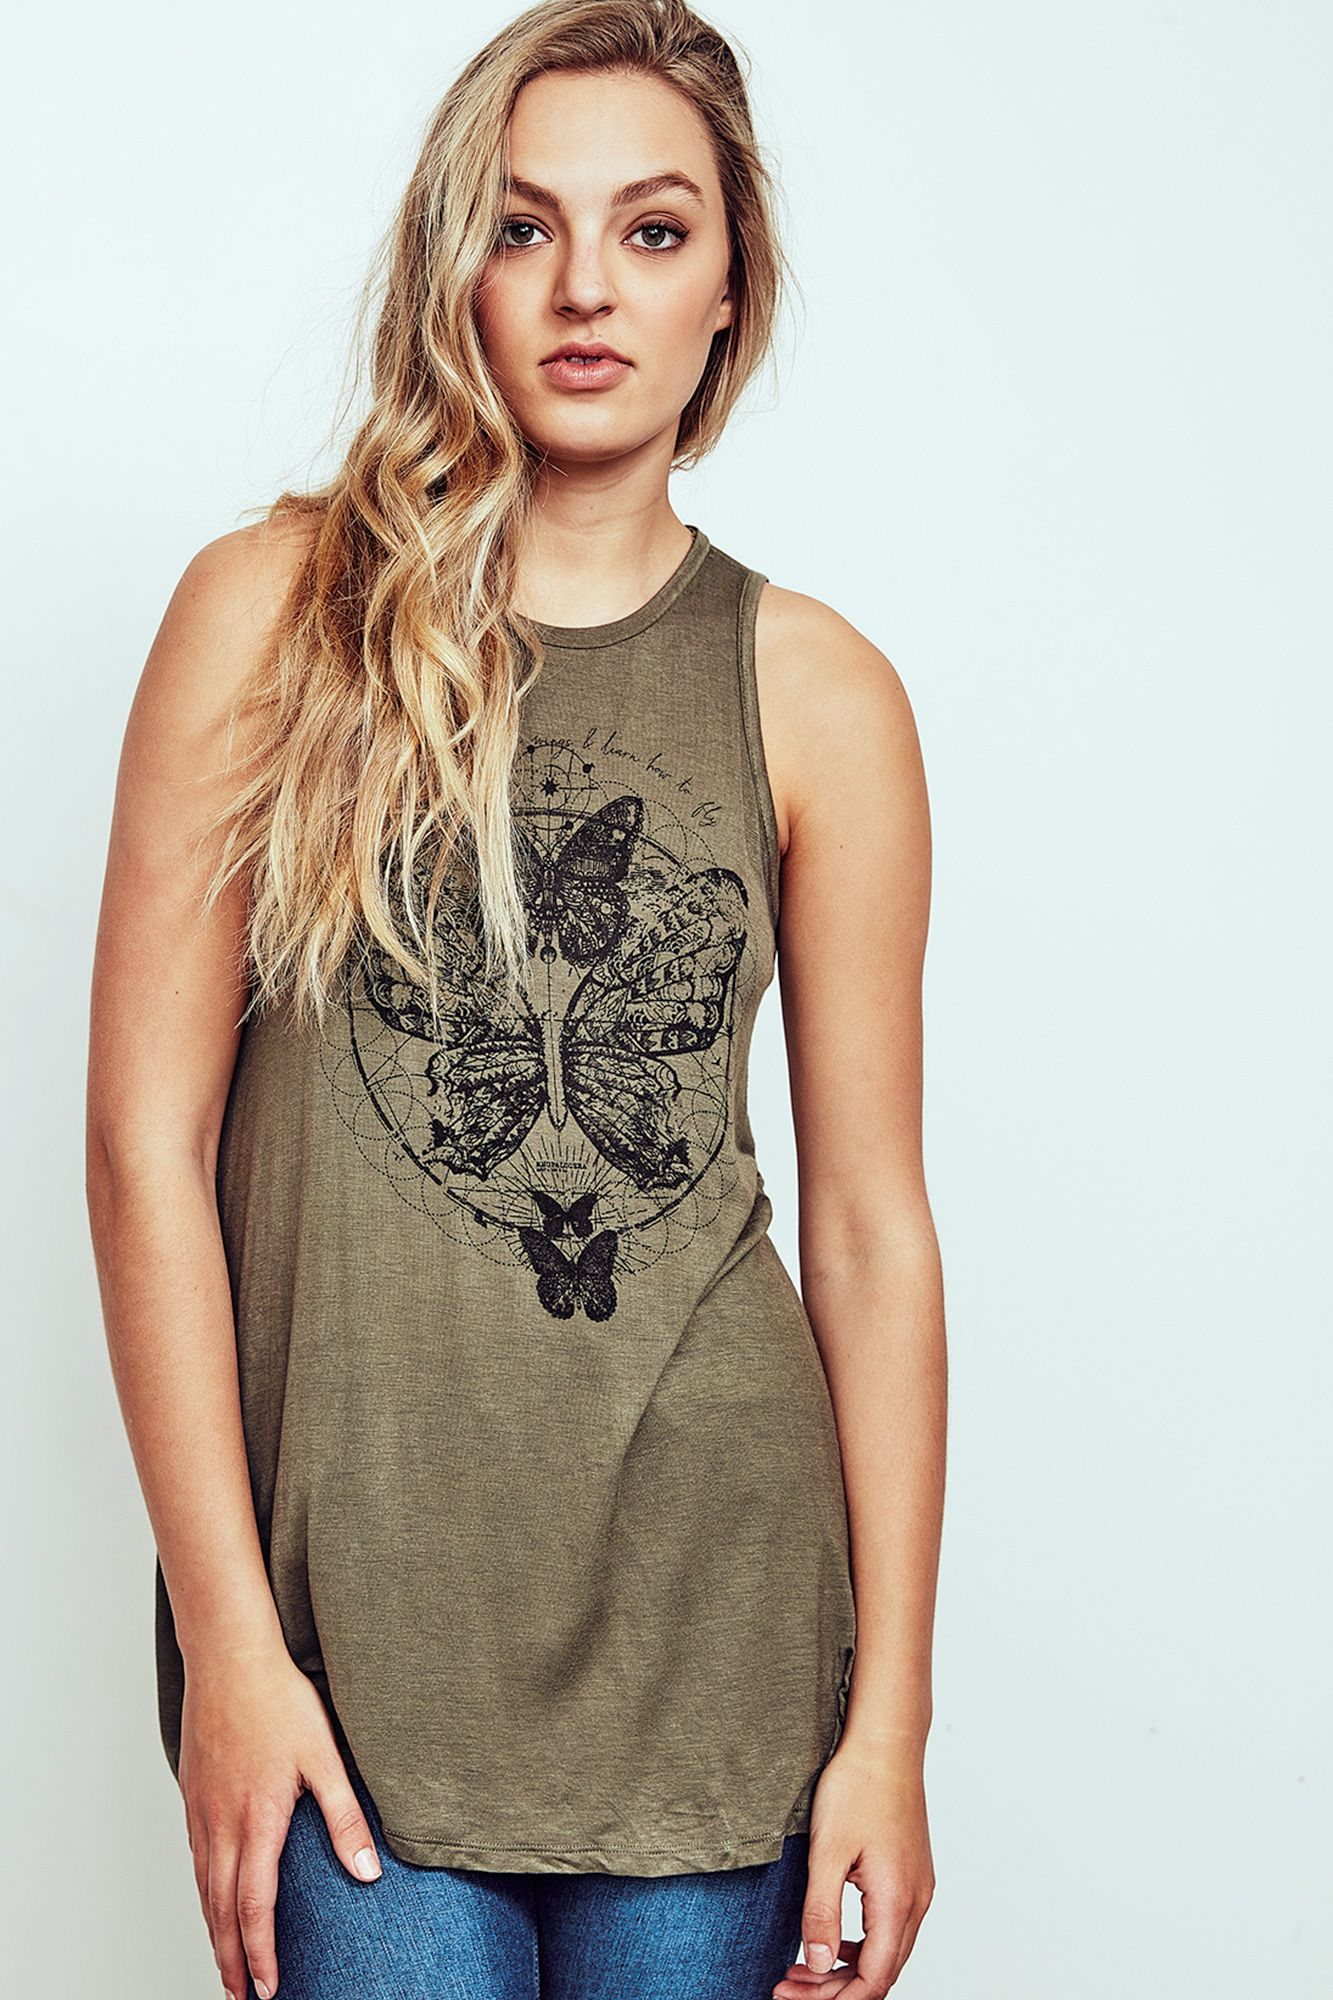 Butterfly graphic tank style pinterest urban planet graphic